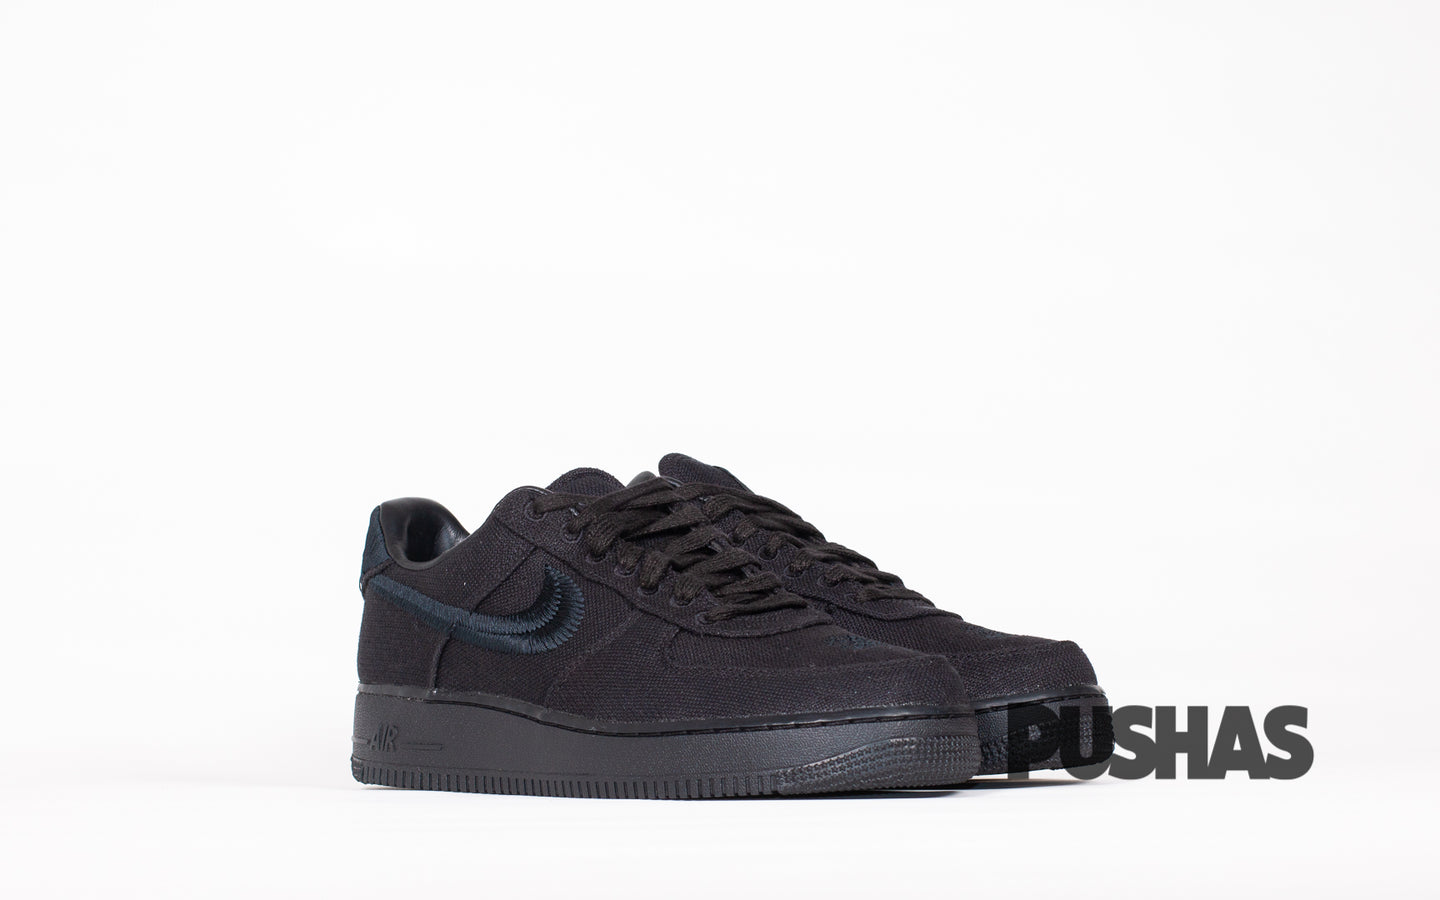 pushas-nike-Air-Force-1-Low-Stussy-Black